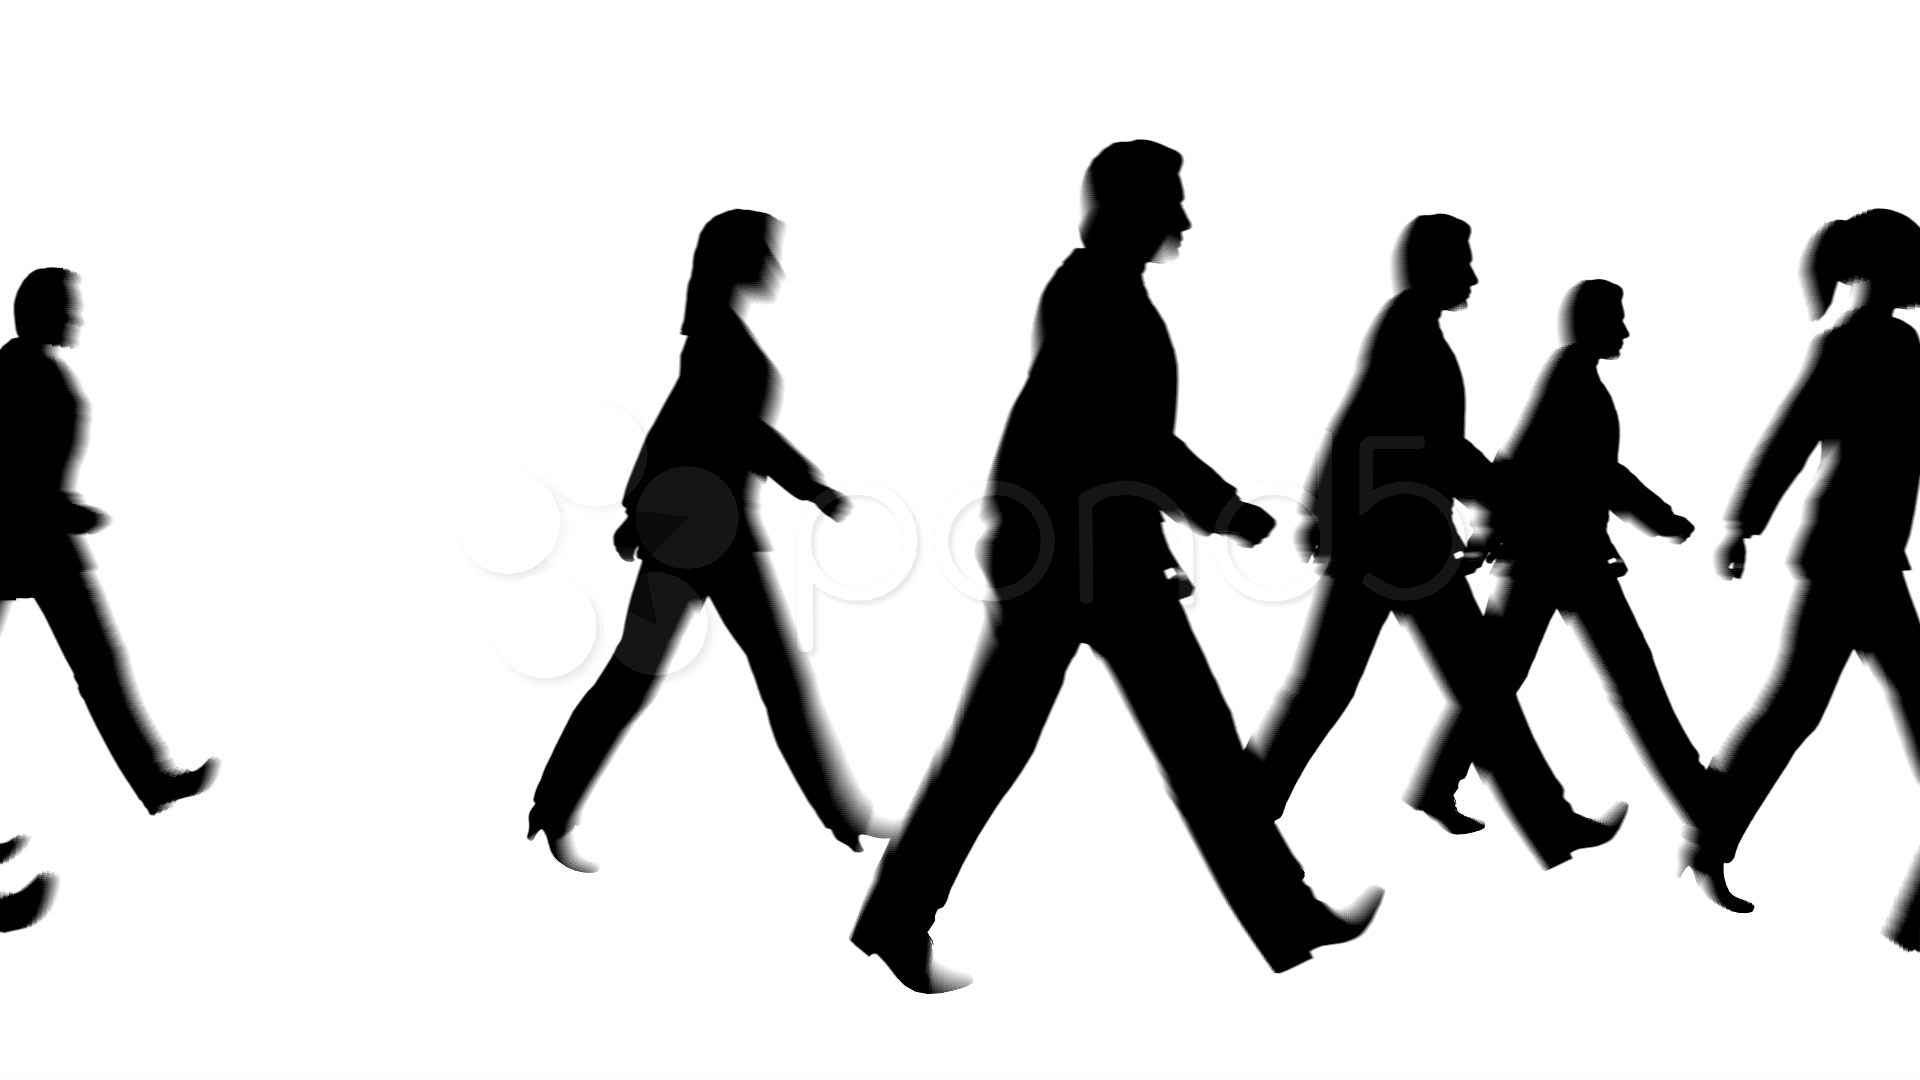 People walking clipart clip art stock Collection of Pedestrian clipart | Free download best ... clip art stock